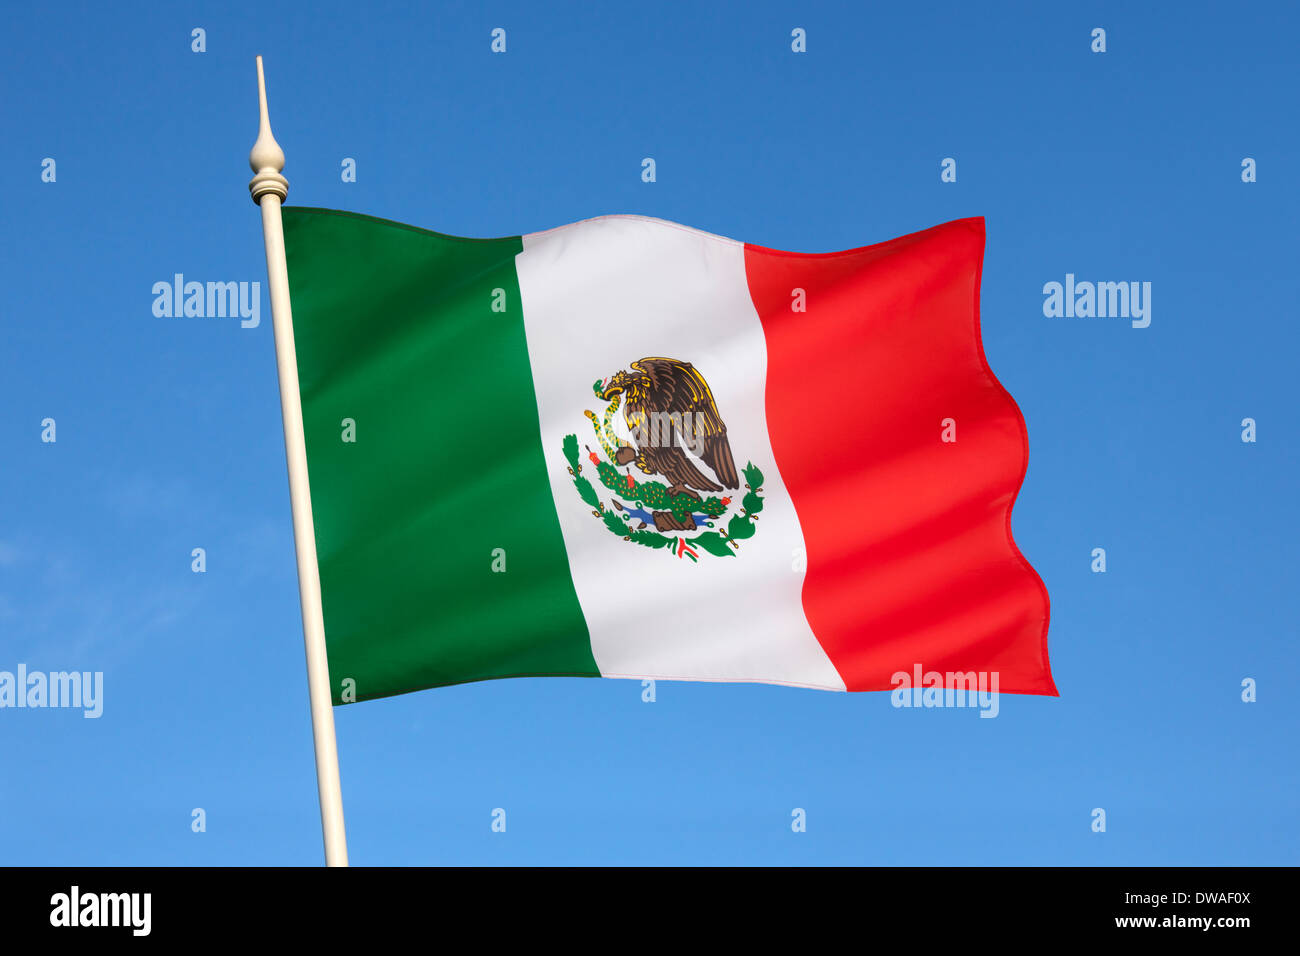 Flag of Mexico. - Stock Image